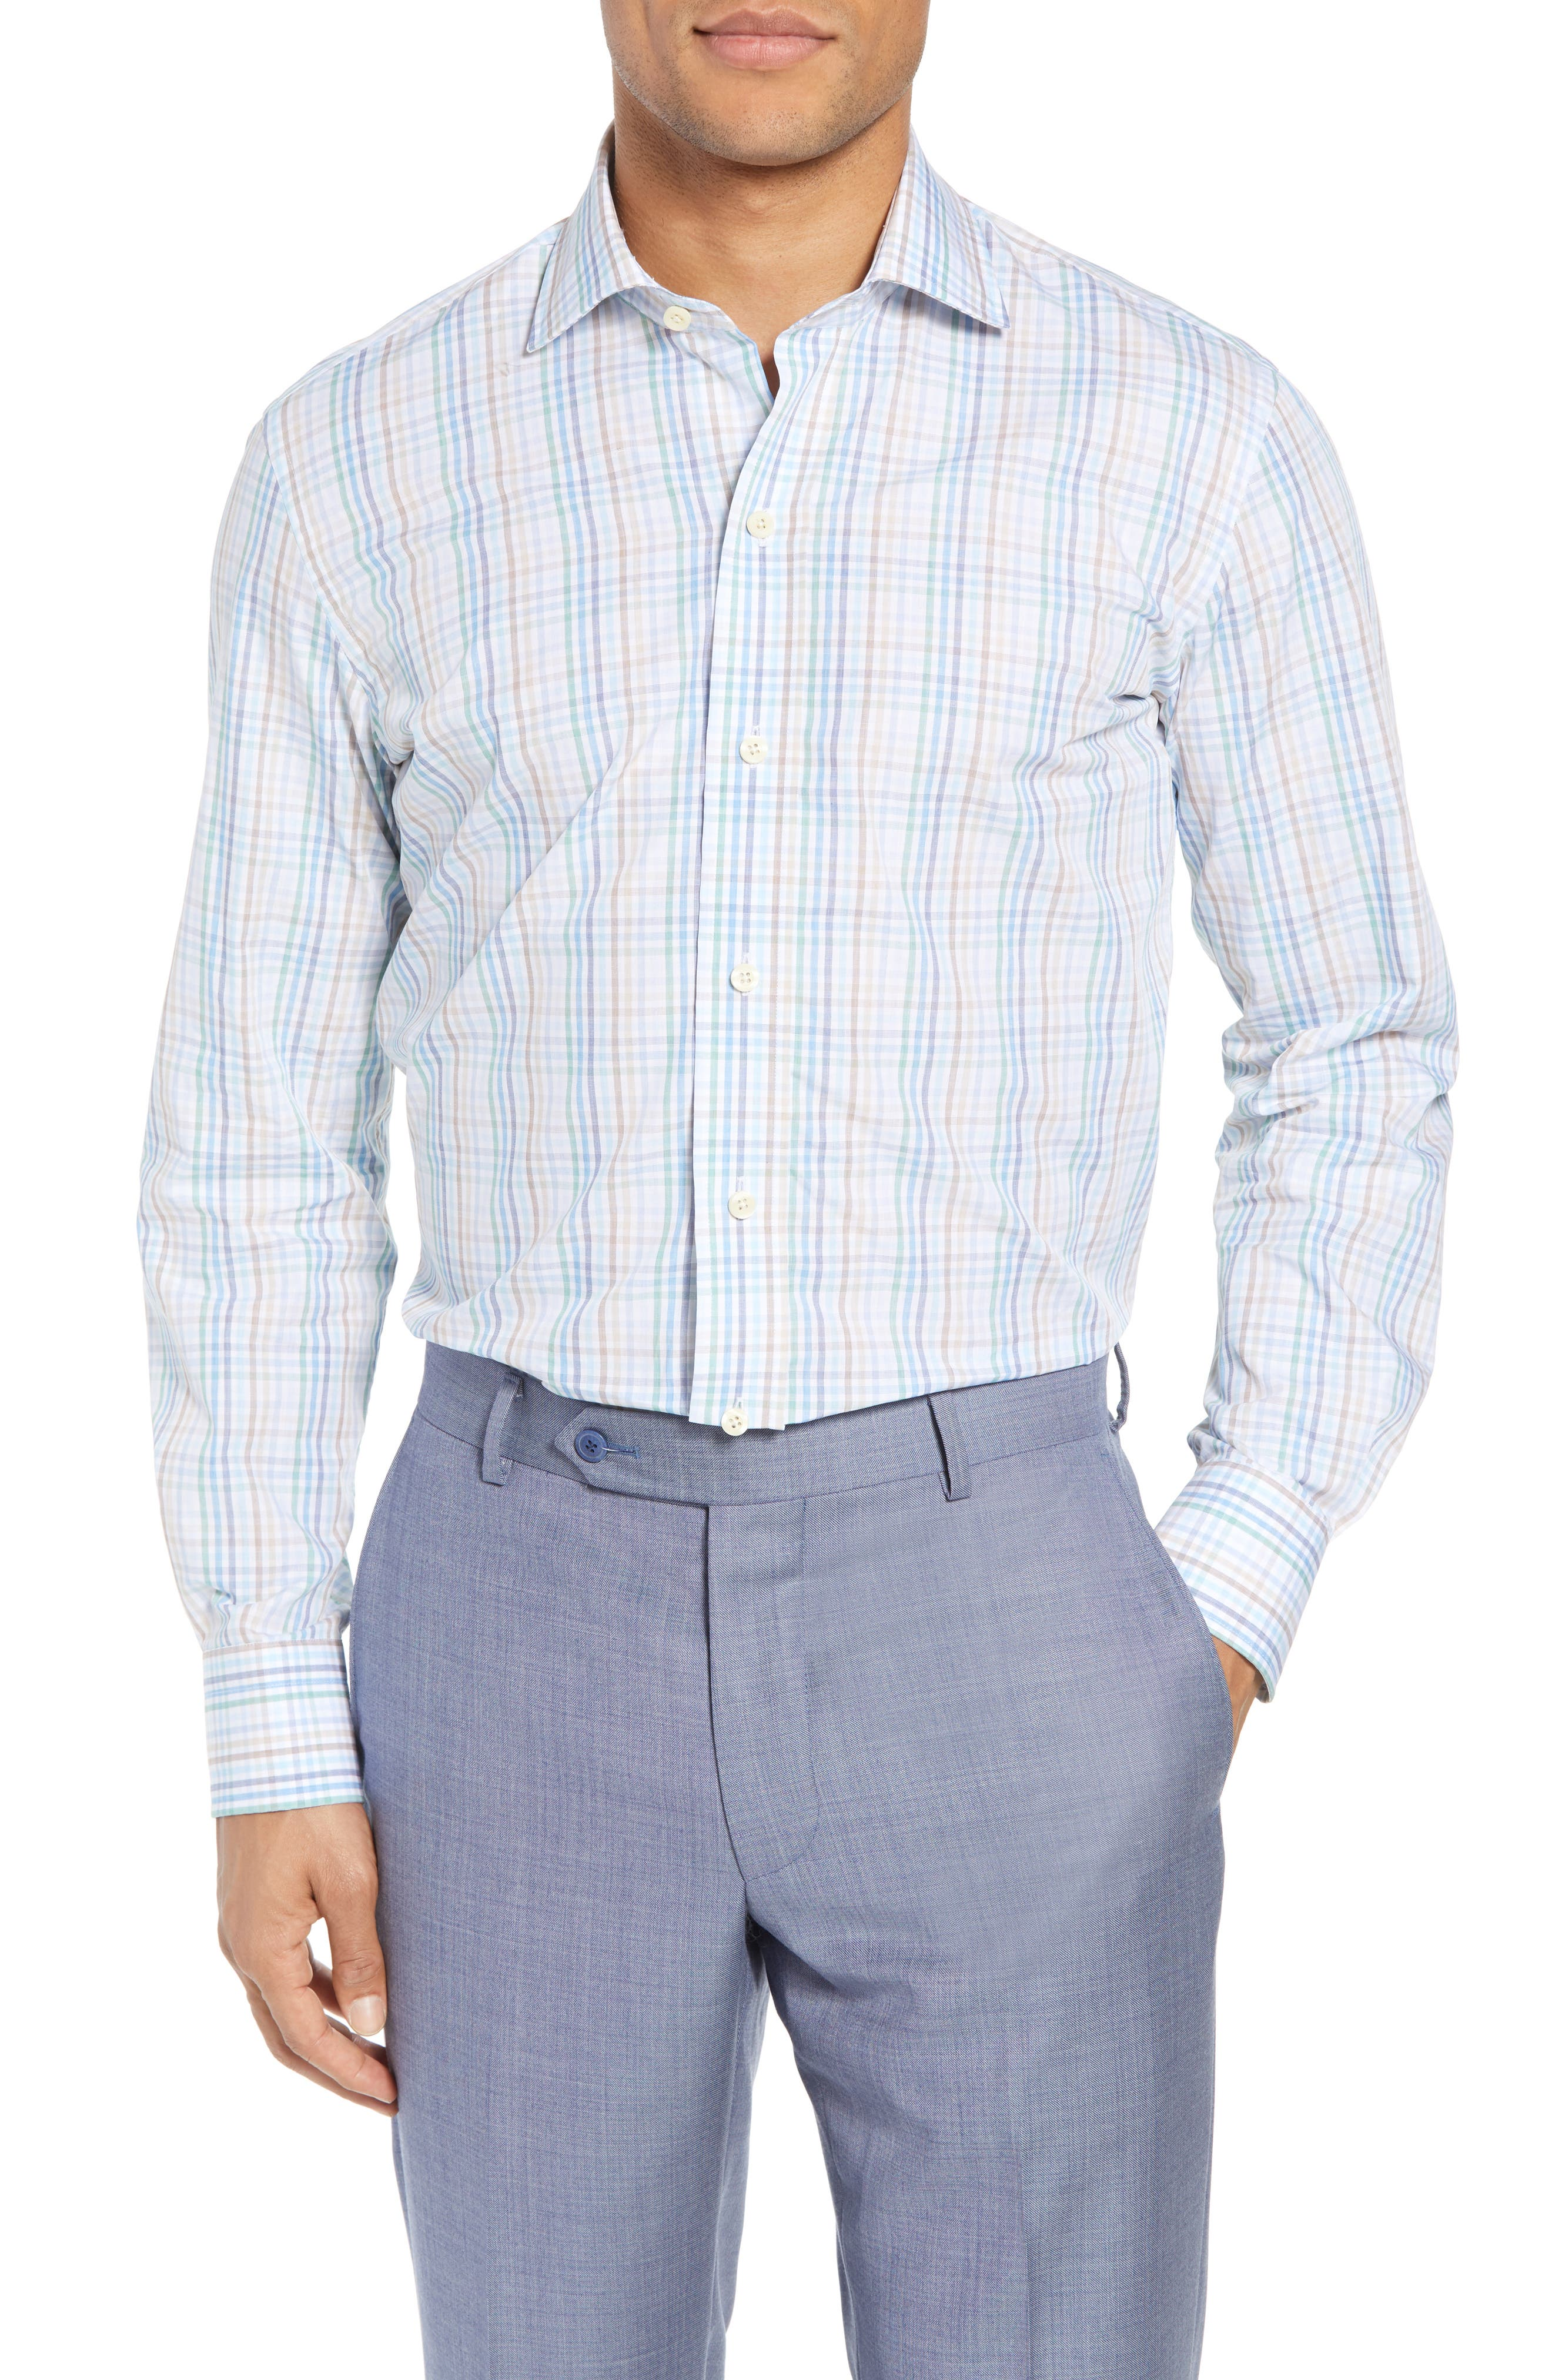 Ledbury Albright Slim Fit Check Dress Shirt